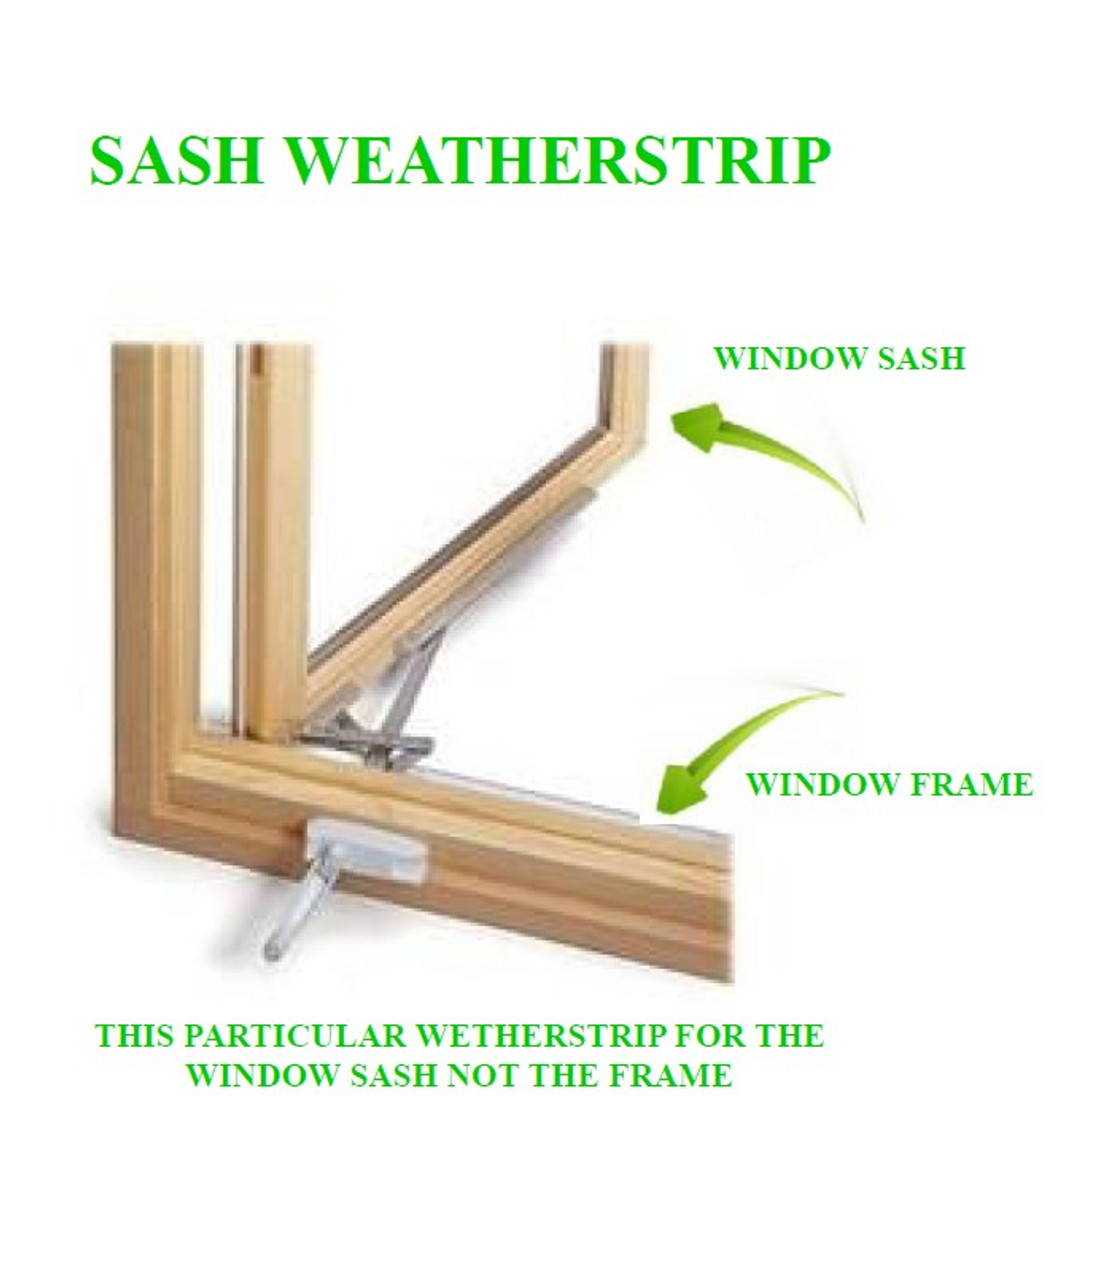 LINCOLN SASH W-STRIP KIT (EACH KIT COMES WITH QTY (4) 72'' LONG PIECES) OF 100830 SASH WEATHER STRIP FOR CLAD EXTERIOR WINDOWS  UNITS FROM 1991-1997